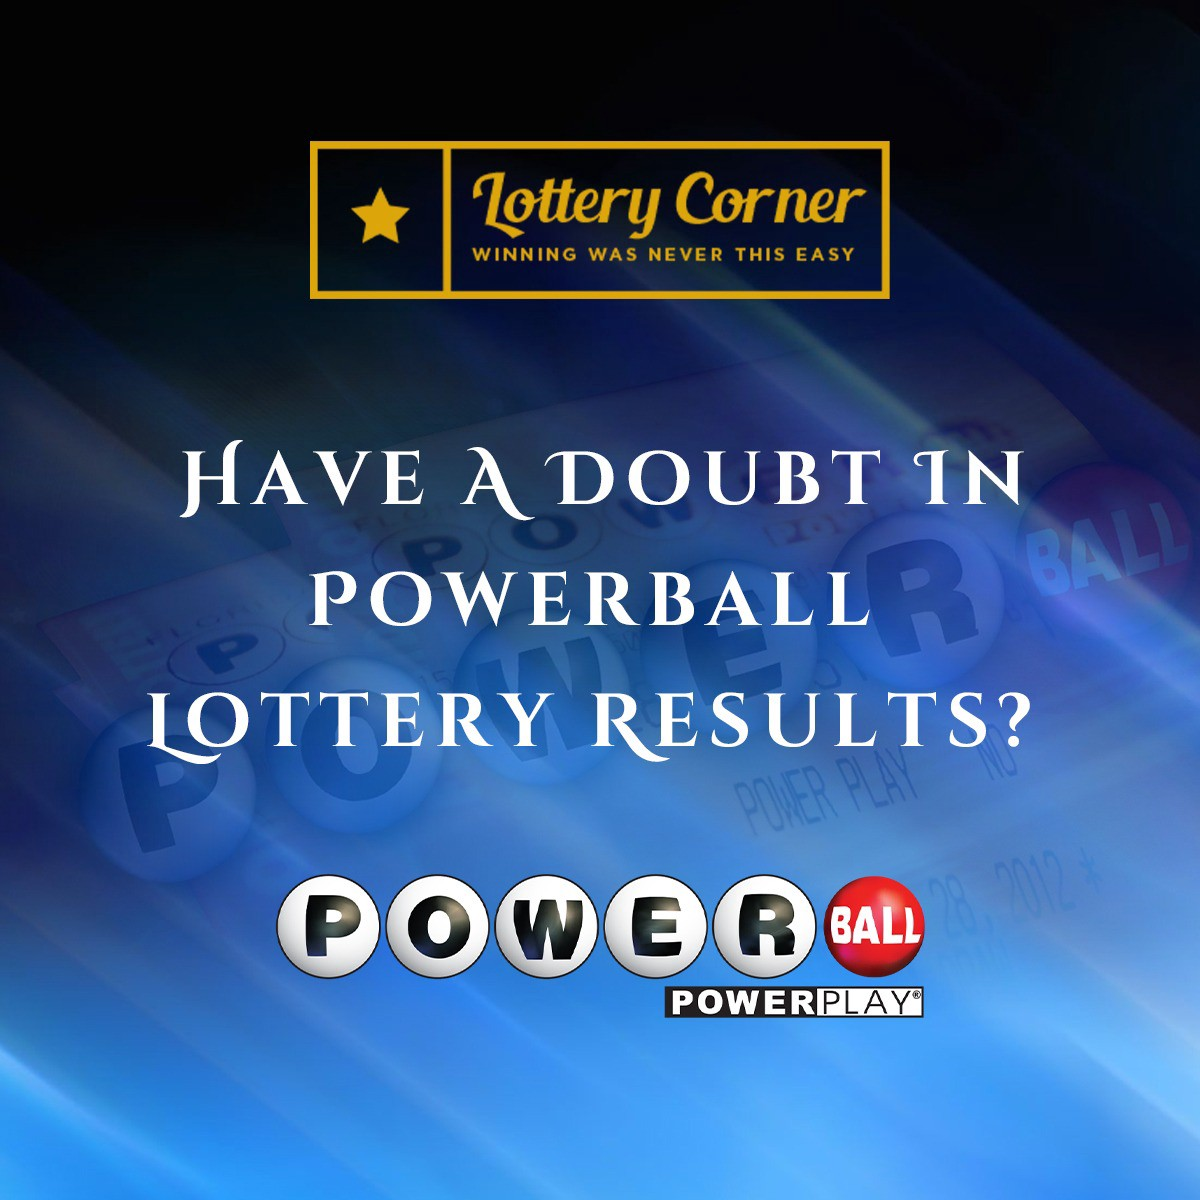 Usa powerball results › latest